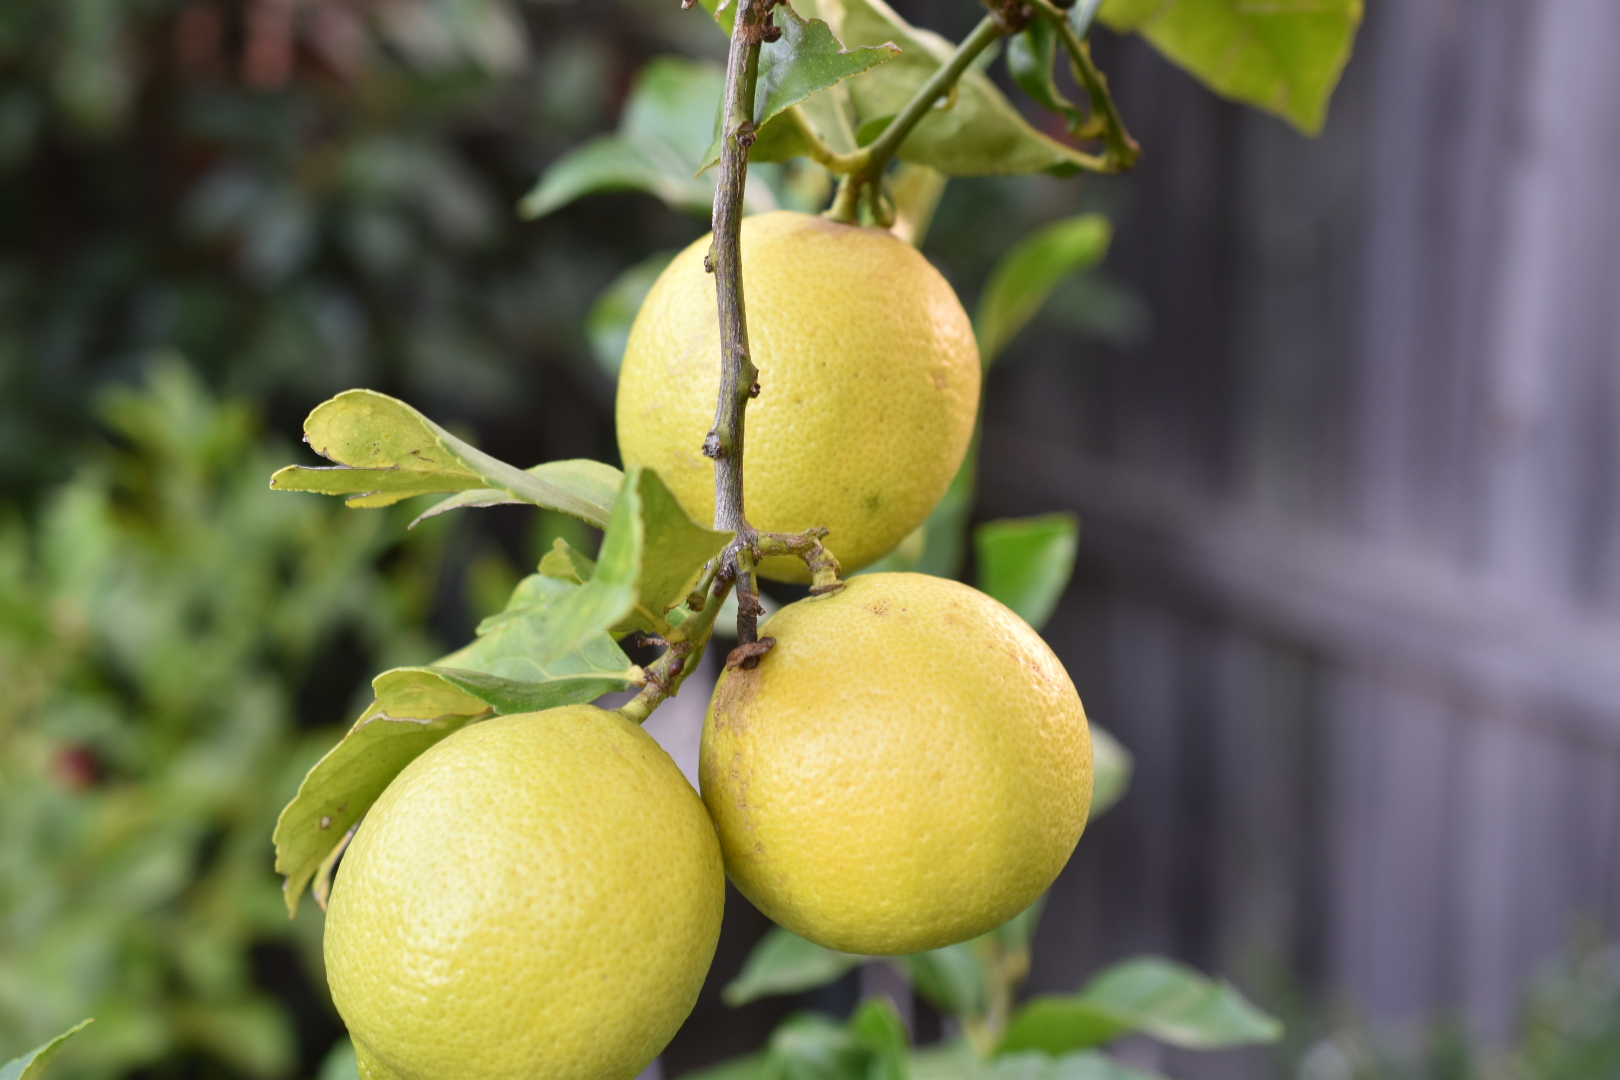 Gorgeous fresh lemons hanging in the tree